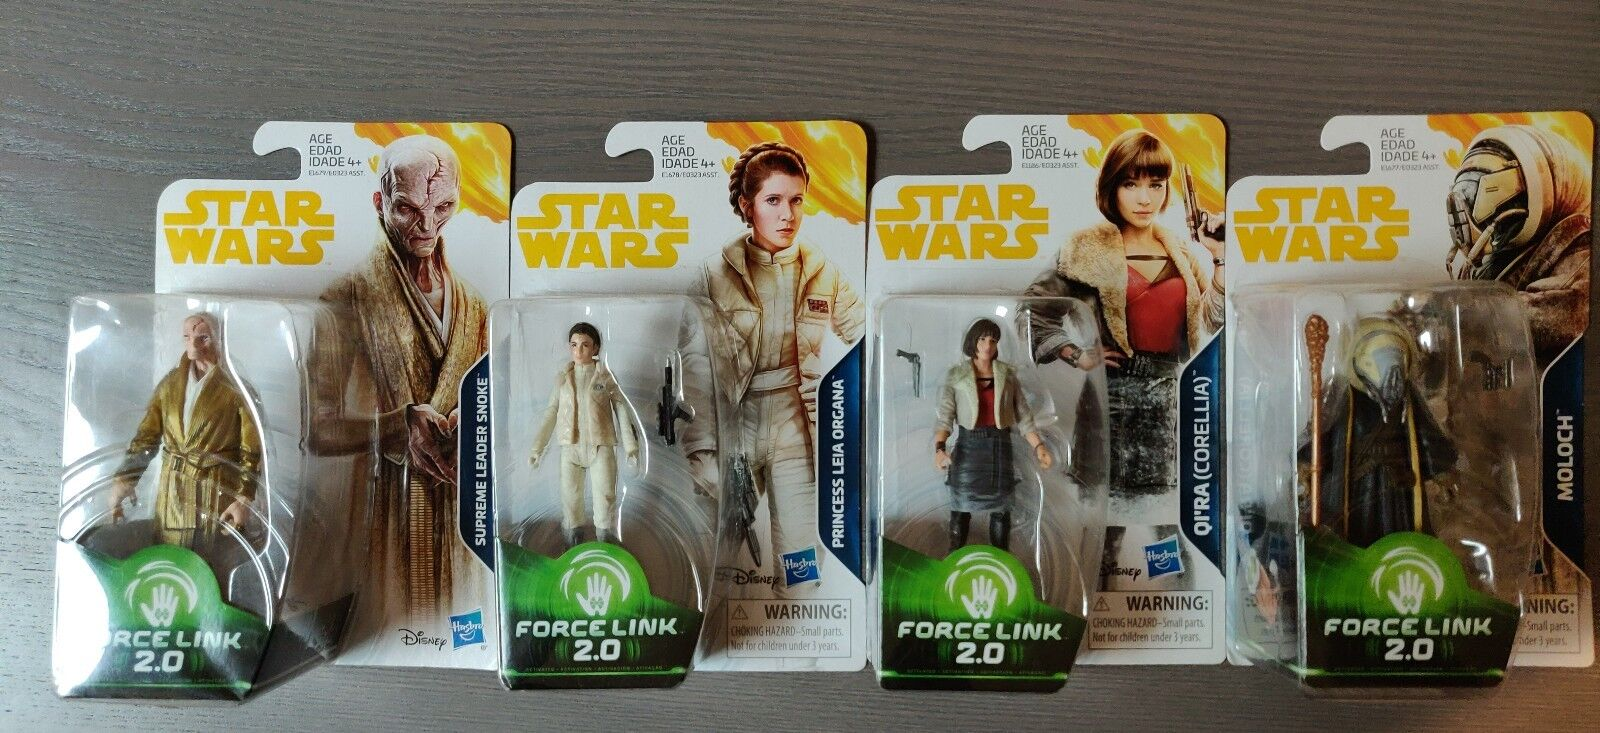 Star Wars Wars Wars Force Link 2.0, Princess Leia, Supreme Leader Snoke, Moloch, Qi'ra 21e844